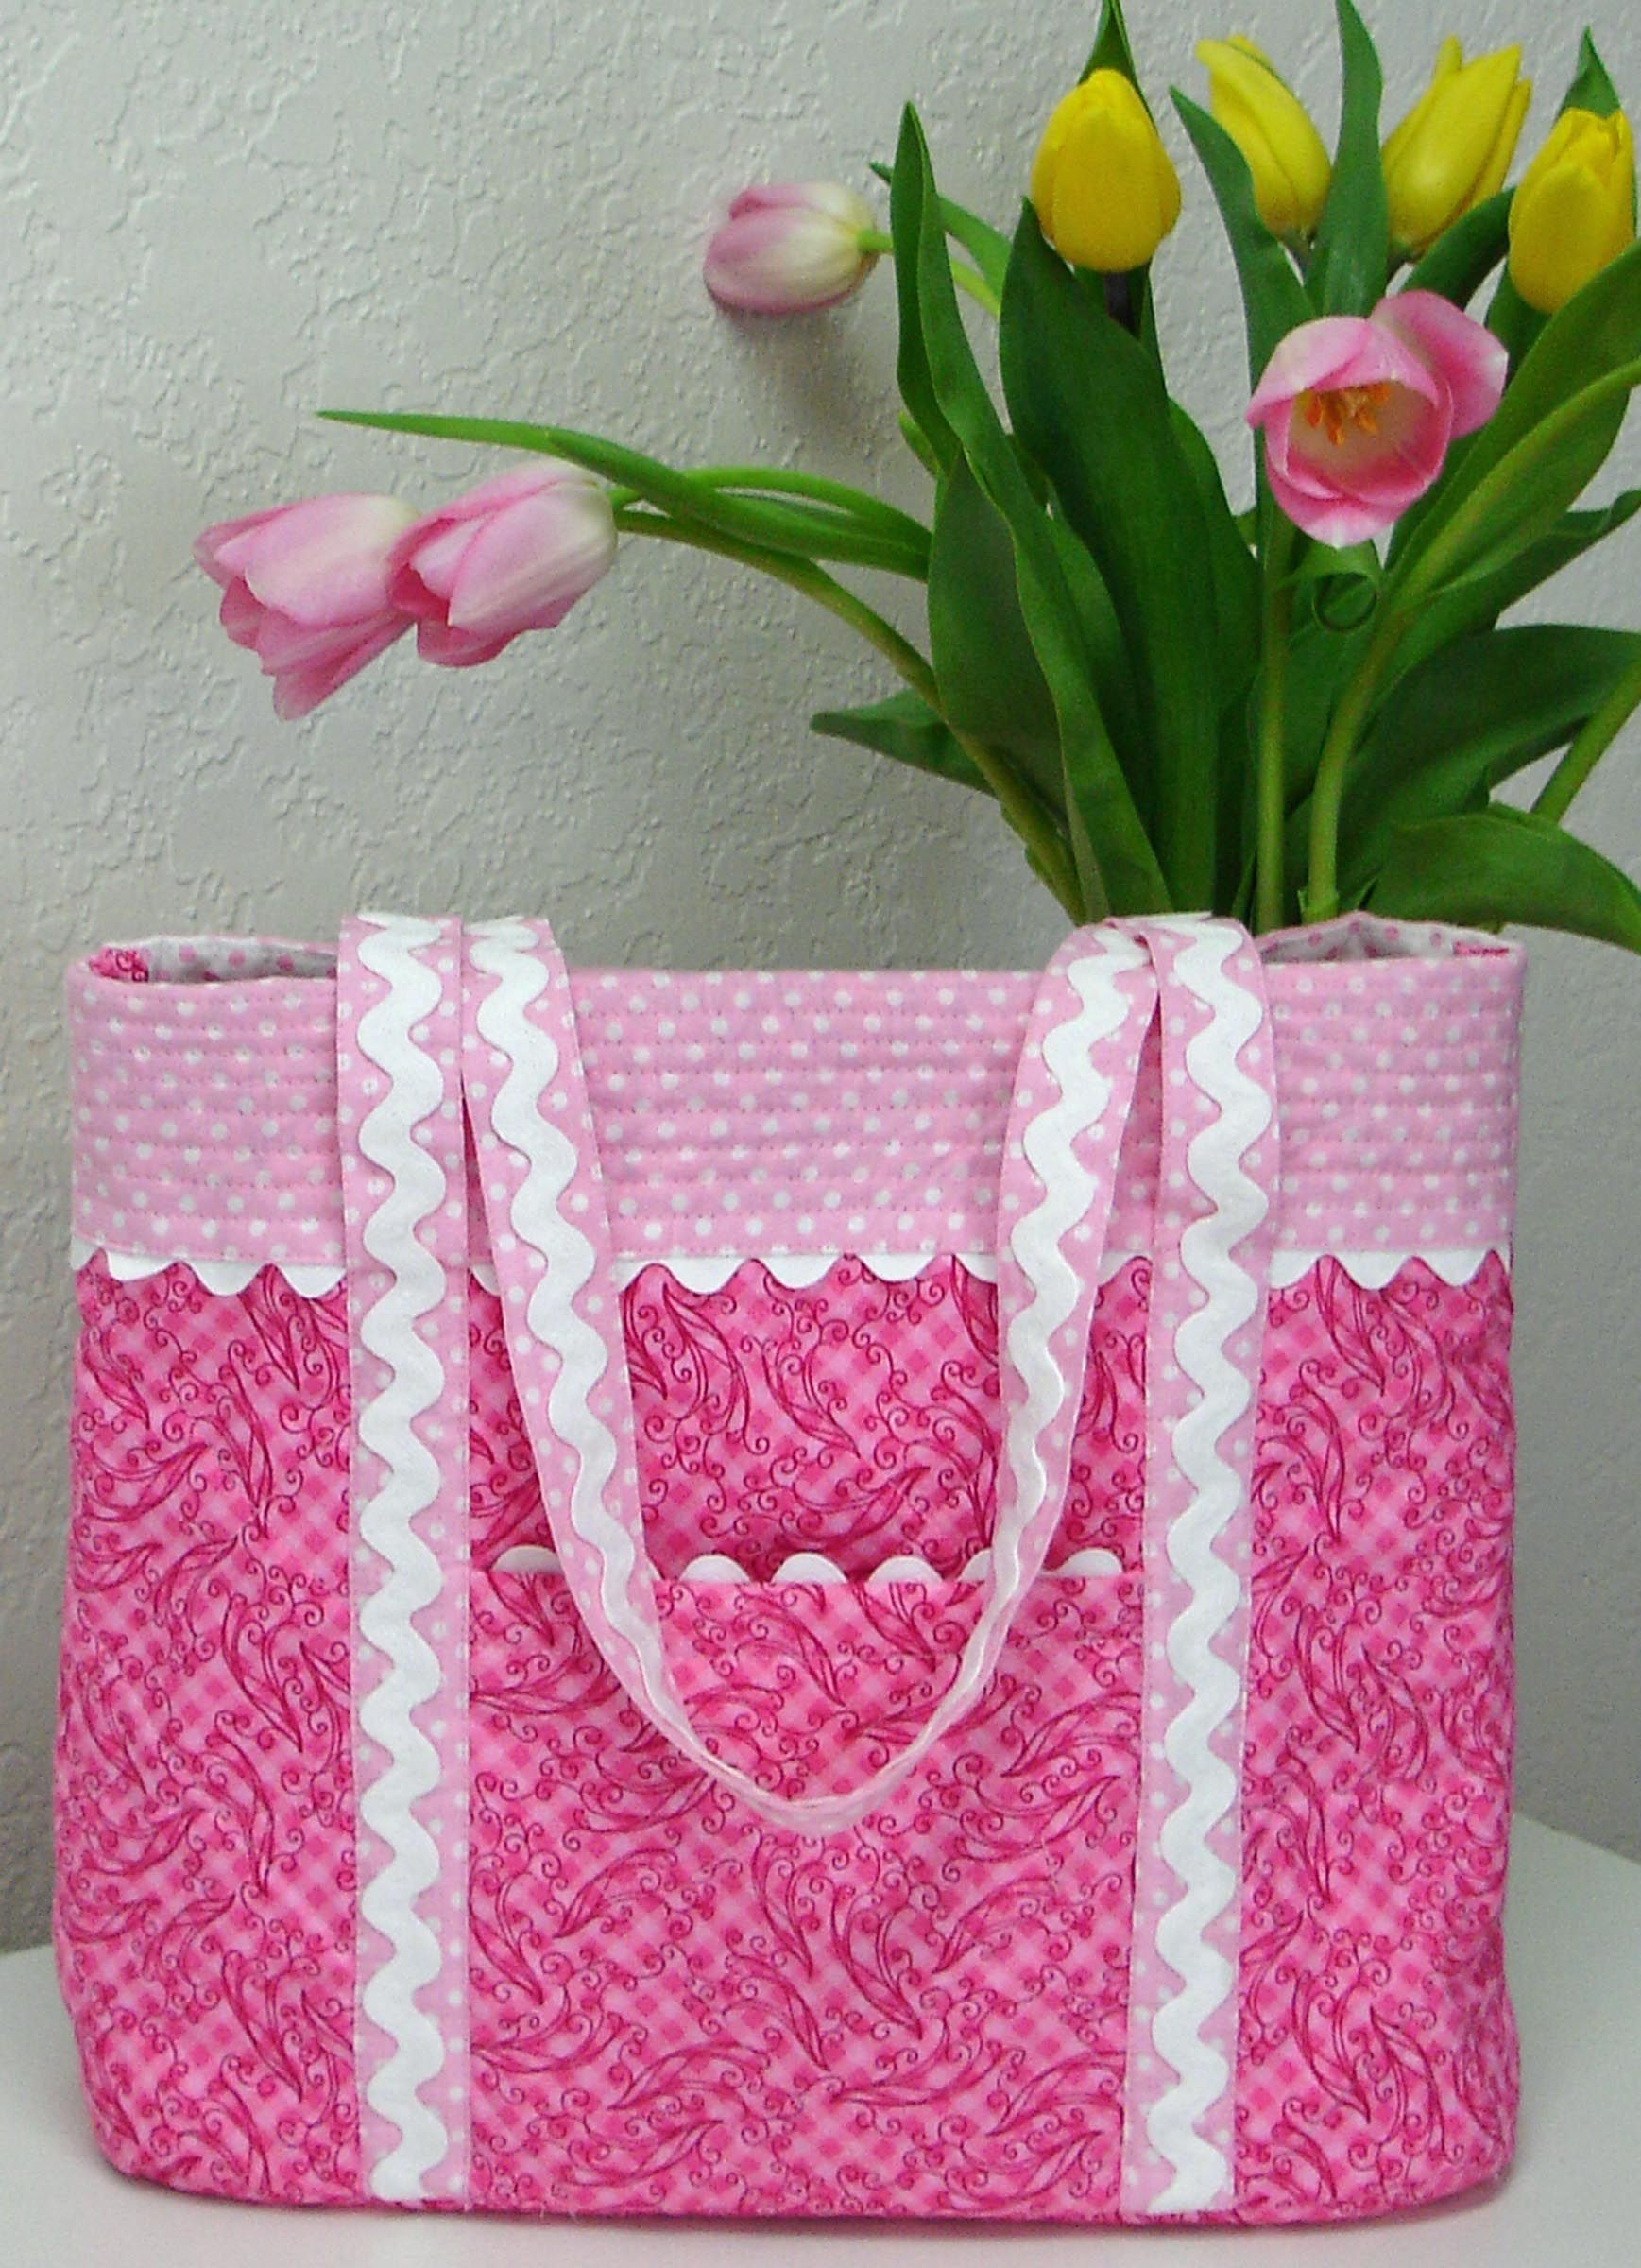 Sew 'N' Go Quilted Handbag - PDF Pattern + How to Add Rickrack to Seams Free Video Tutorial